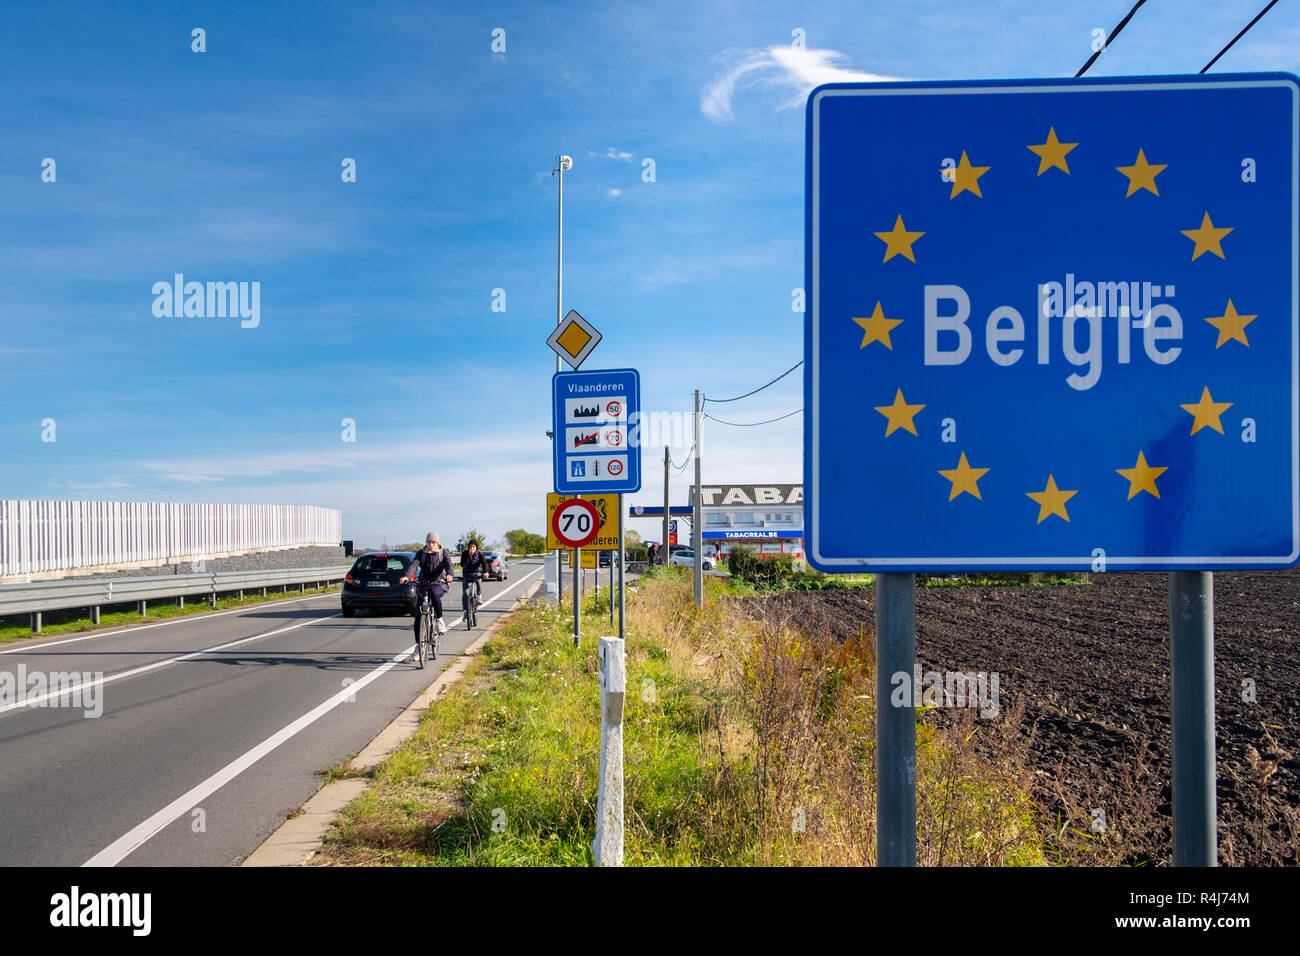 Belgian border sign and cyclists - Stock Image